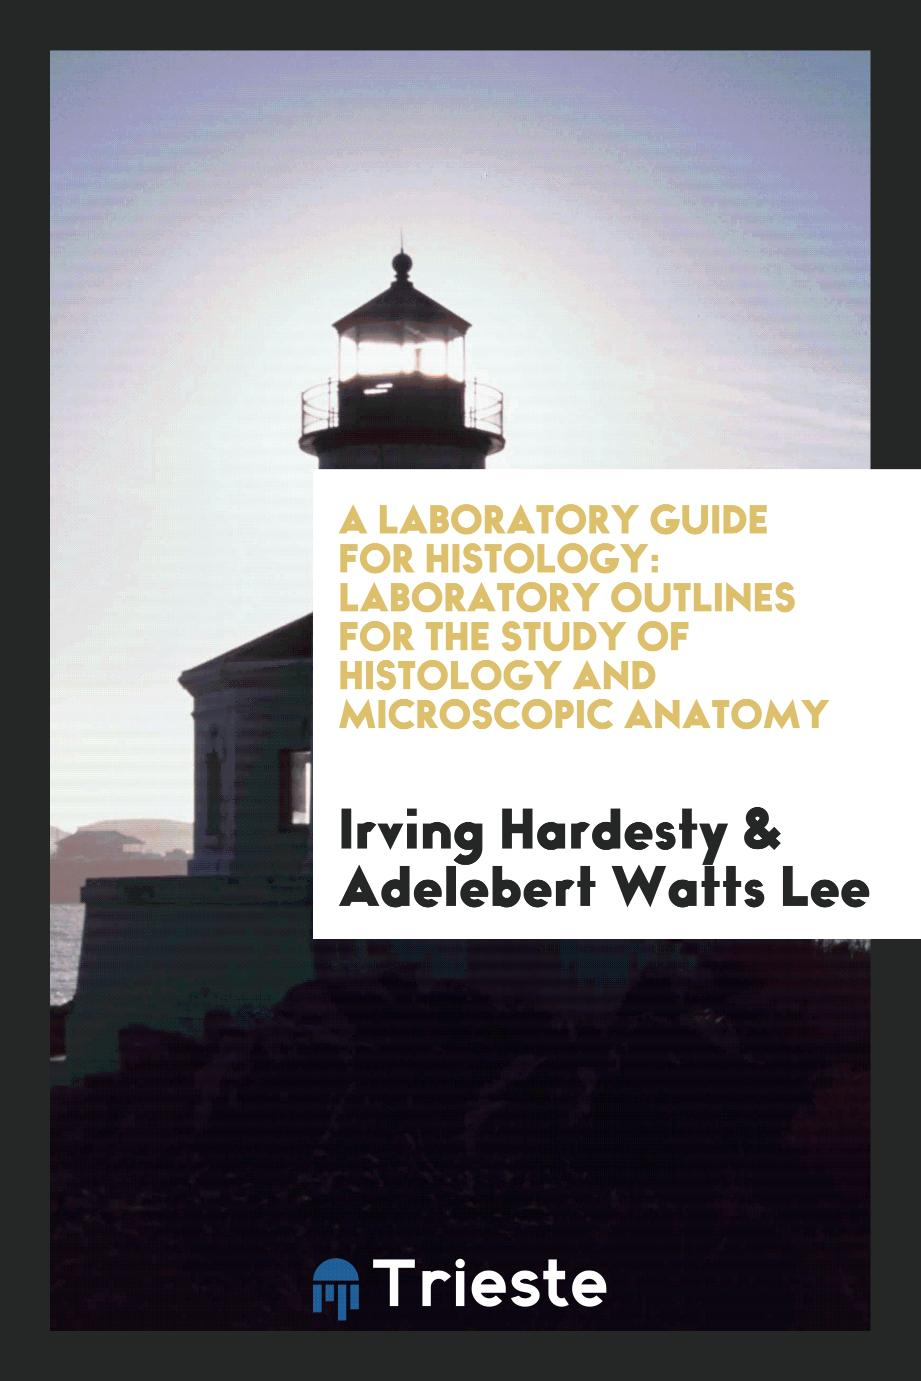 A Laboratory Guide for Histology: Laboratory Outlines for the Study of Histology and Microscopic Anatomy